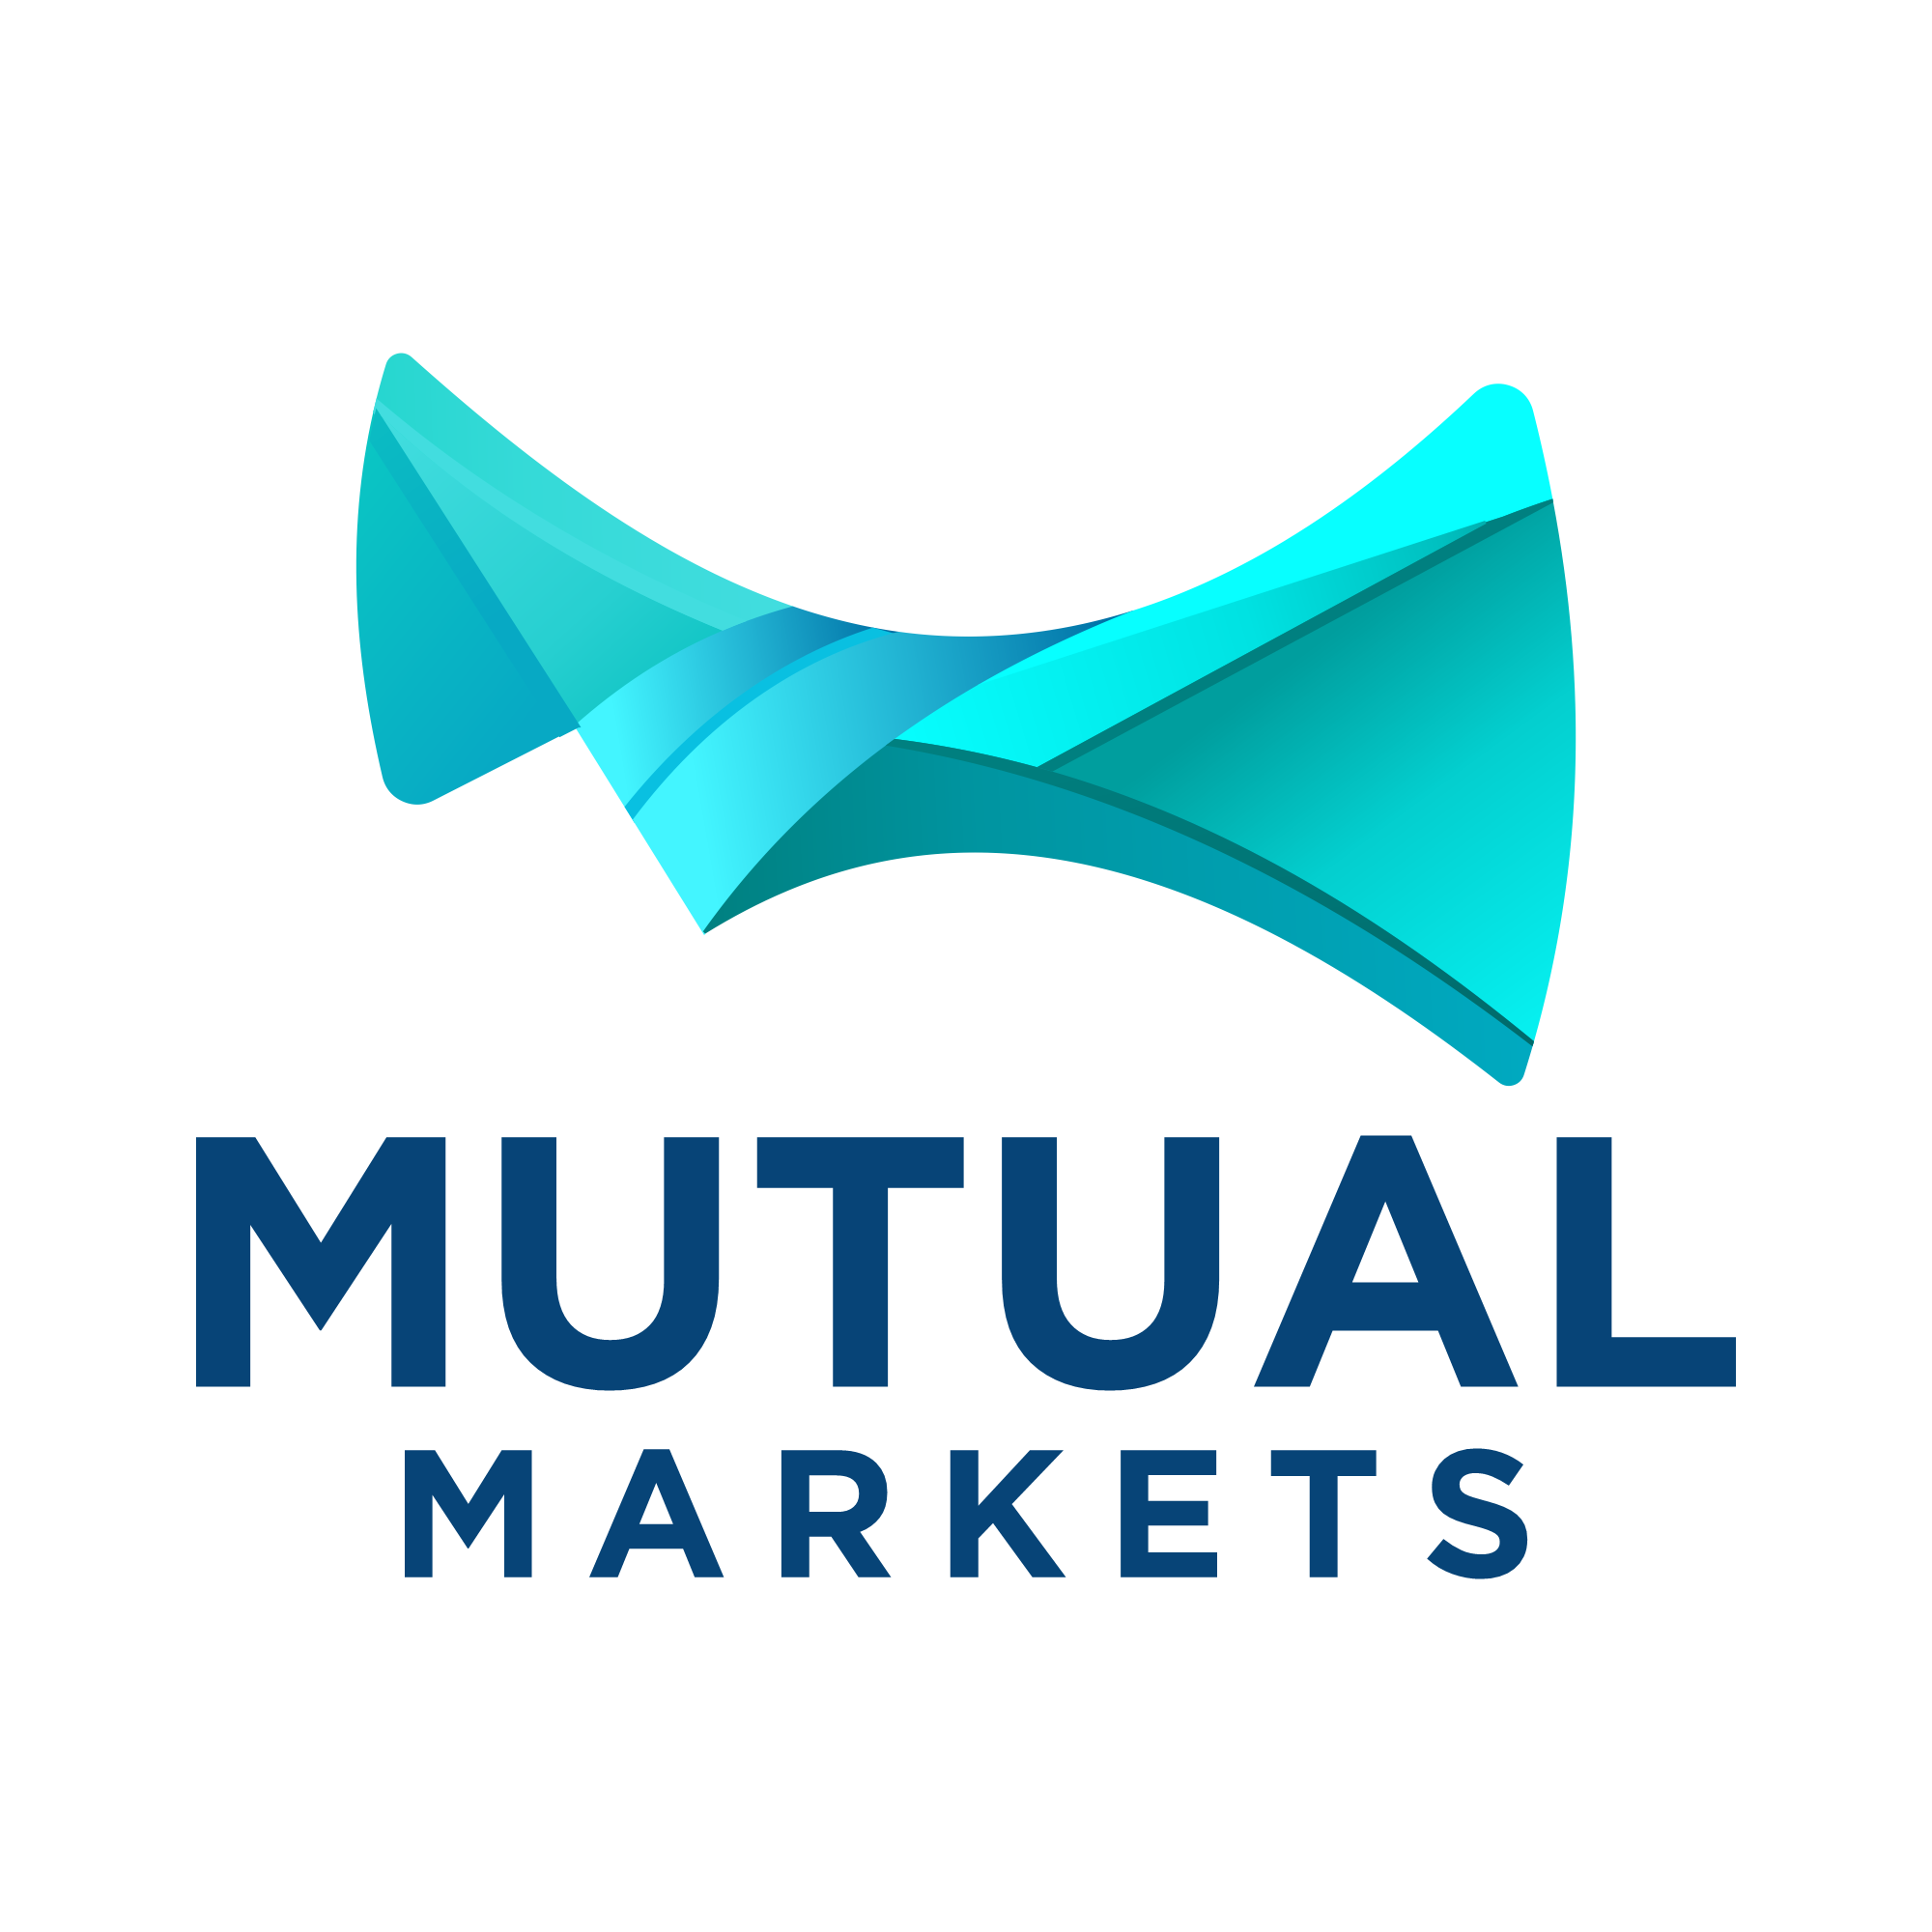 Corporate logo for a marketplace for the top brands in the world